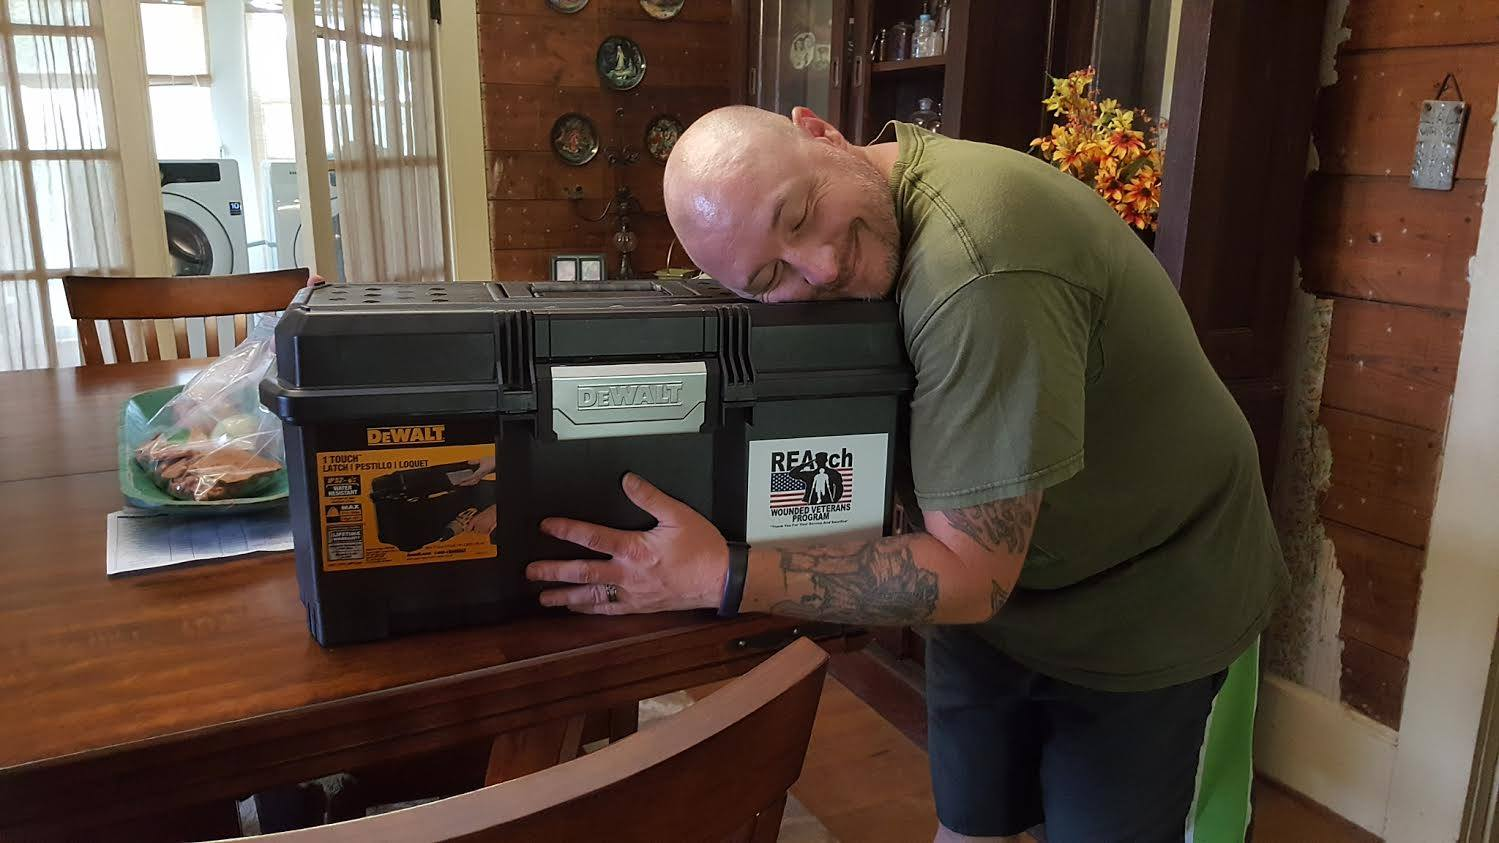 REAch Veteran Toolbox Program has shipped more than 8,000 toolboxes to Veterans, which contains about $600 worth of tools.